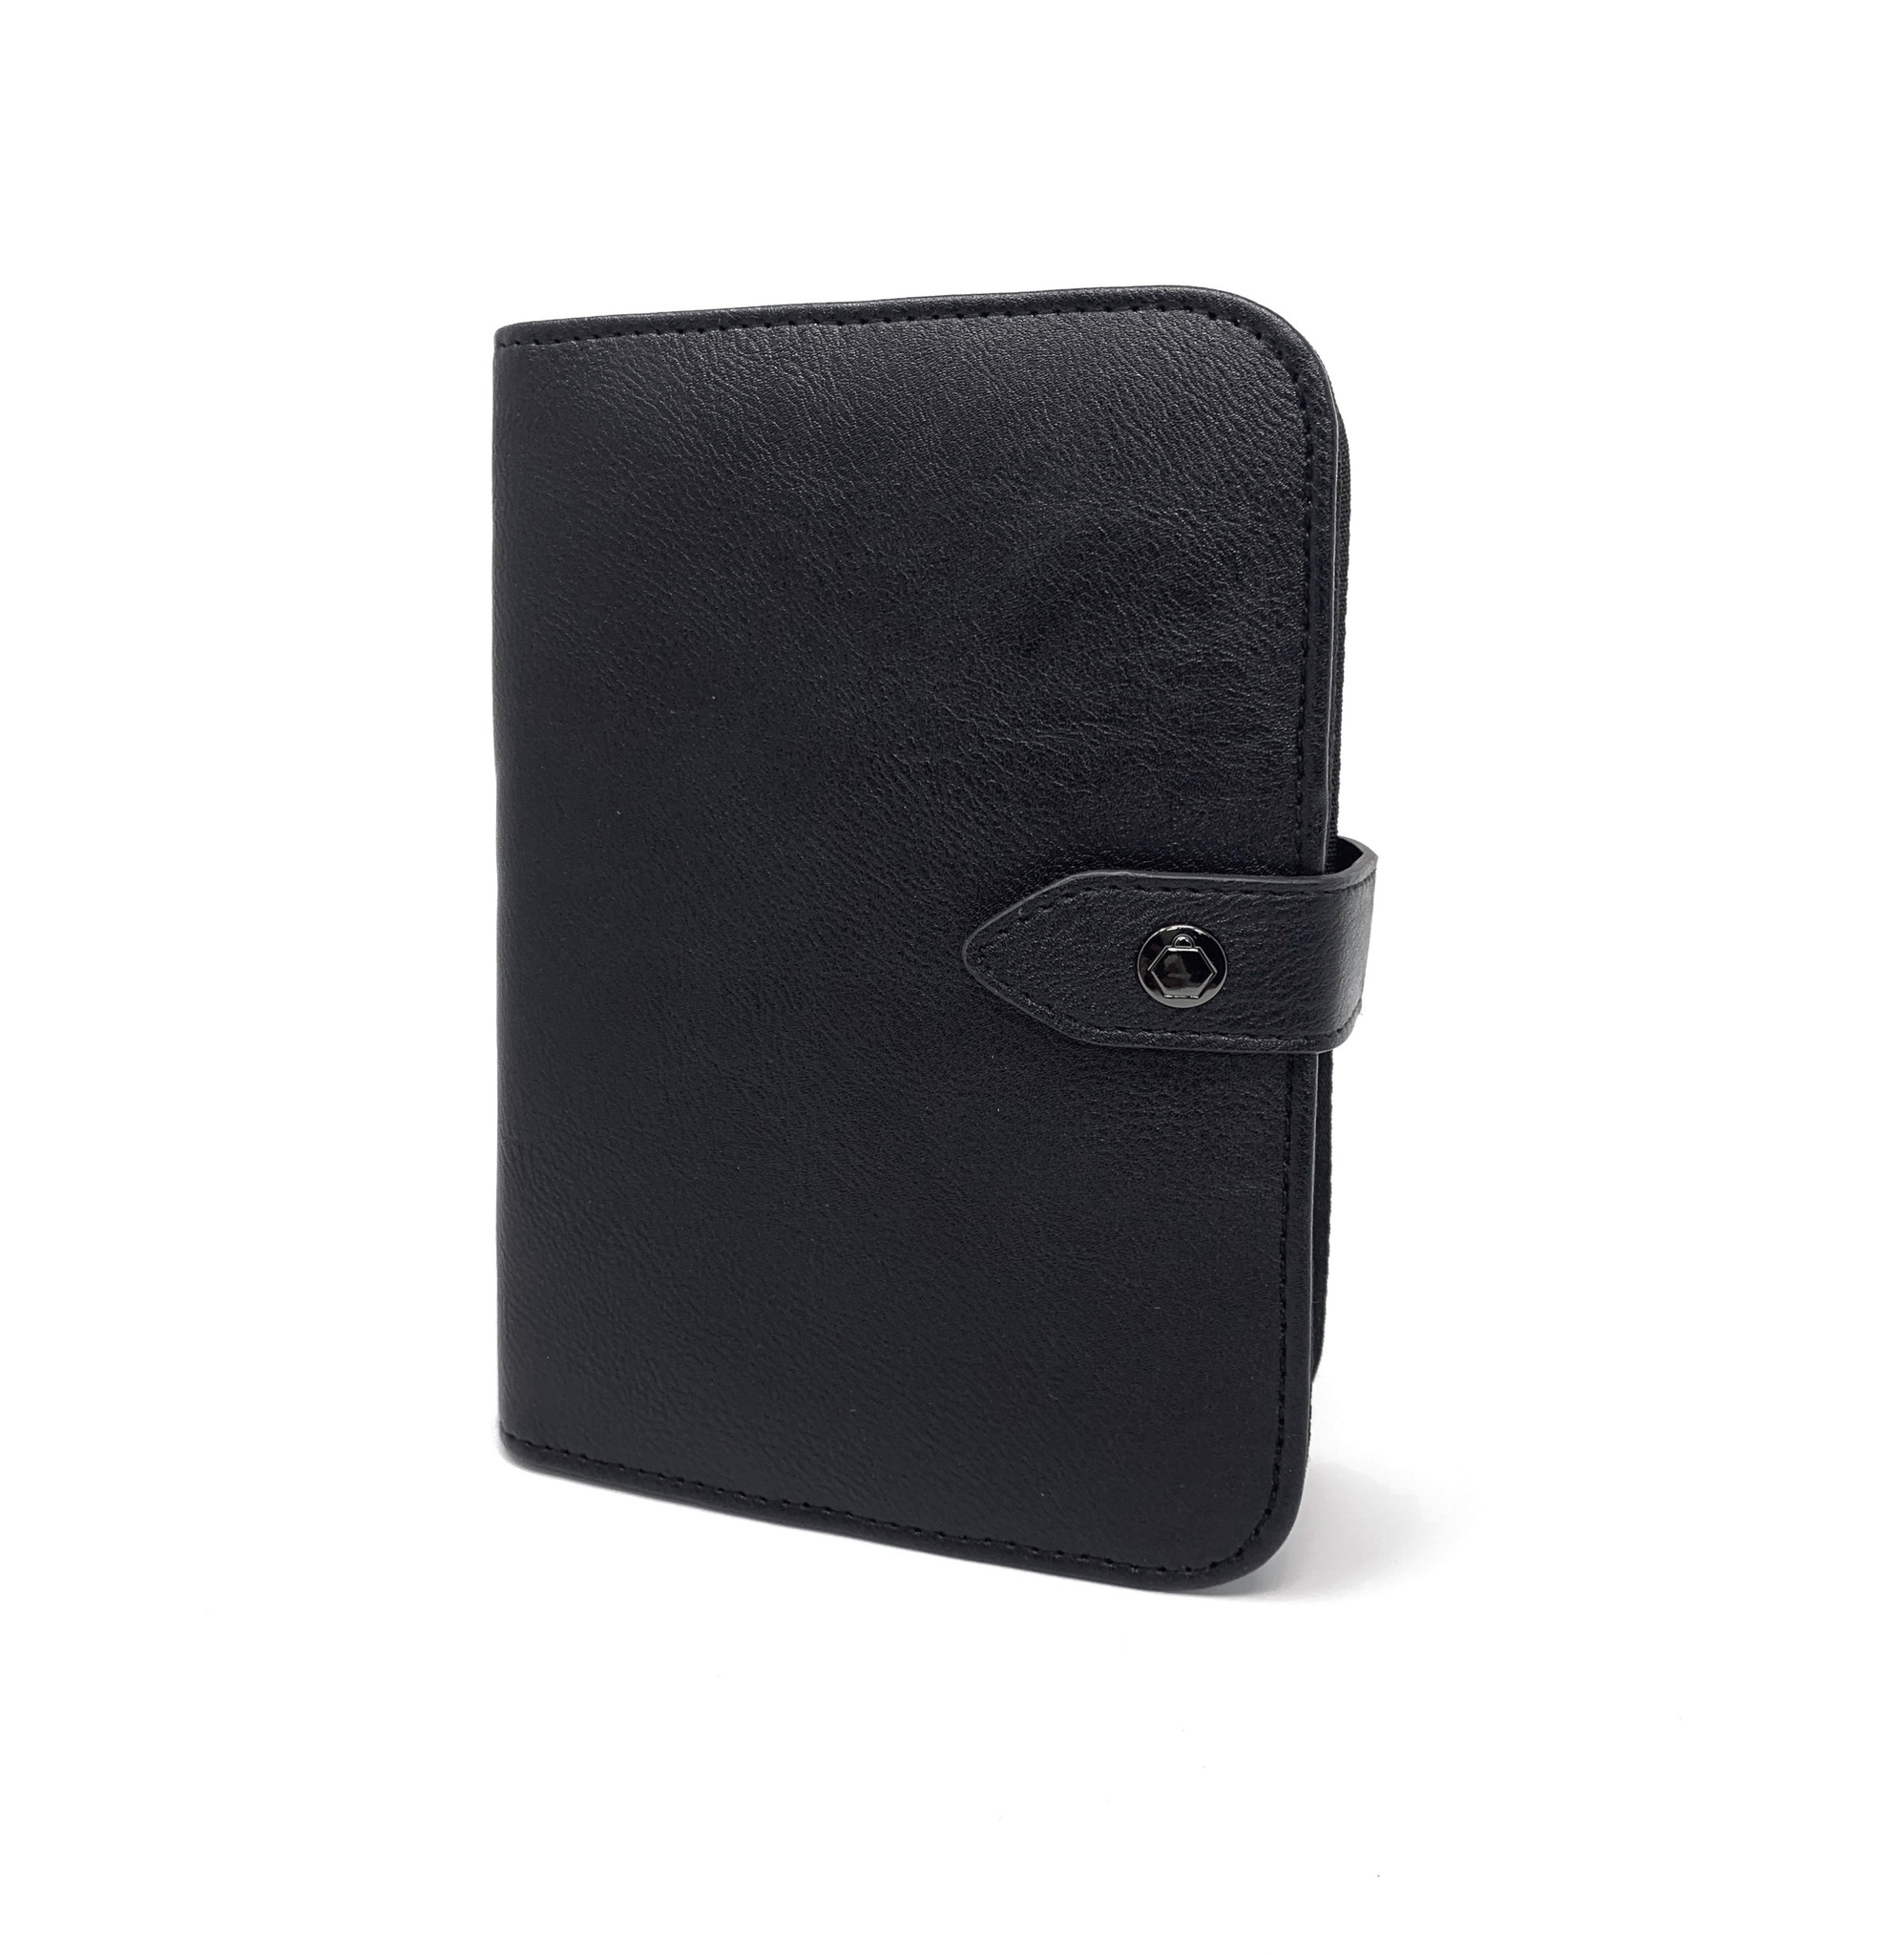 SCOLA Organizer  - Black EDITION-1